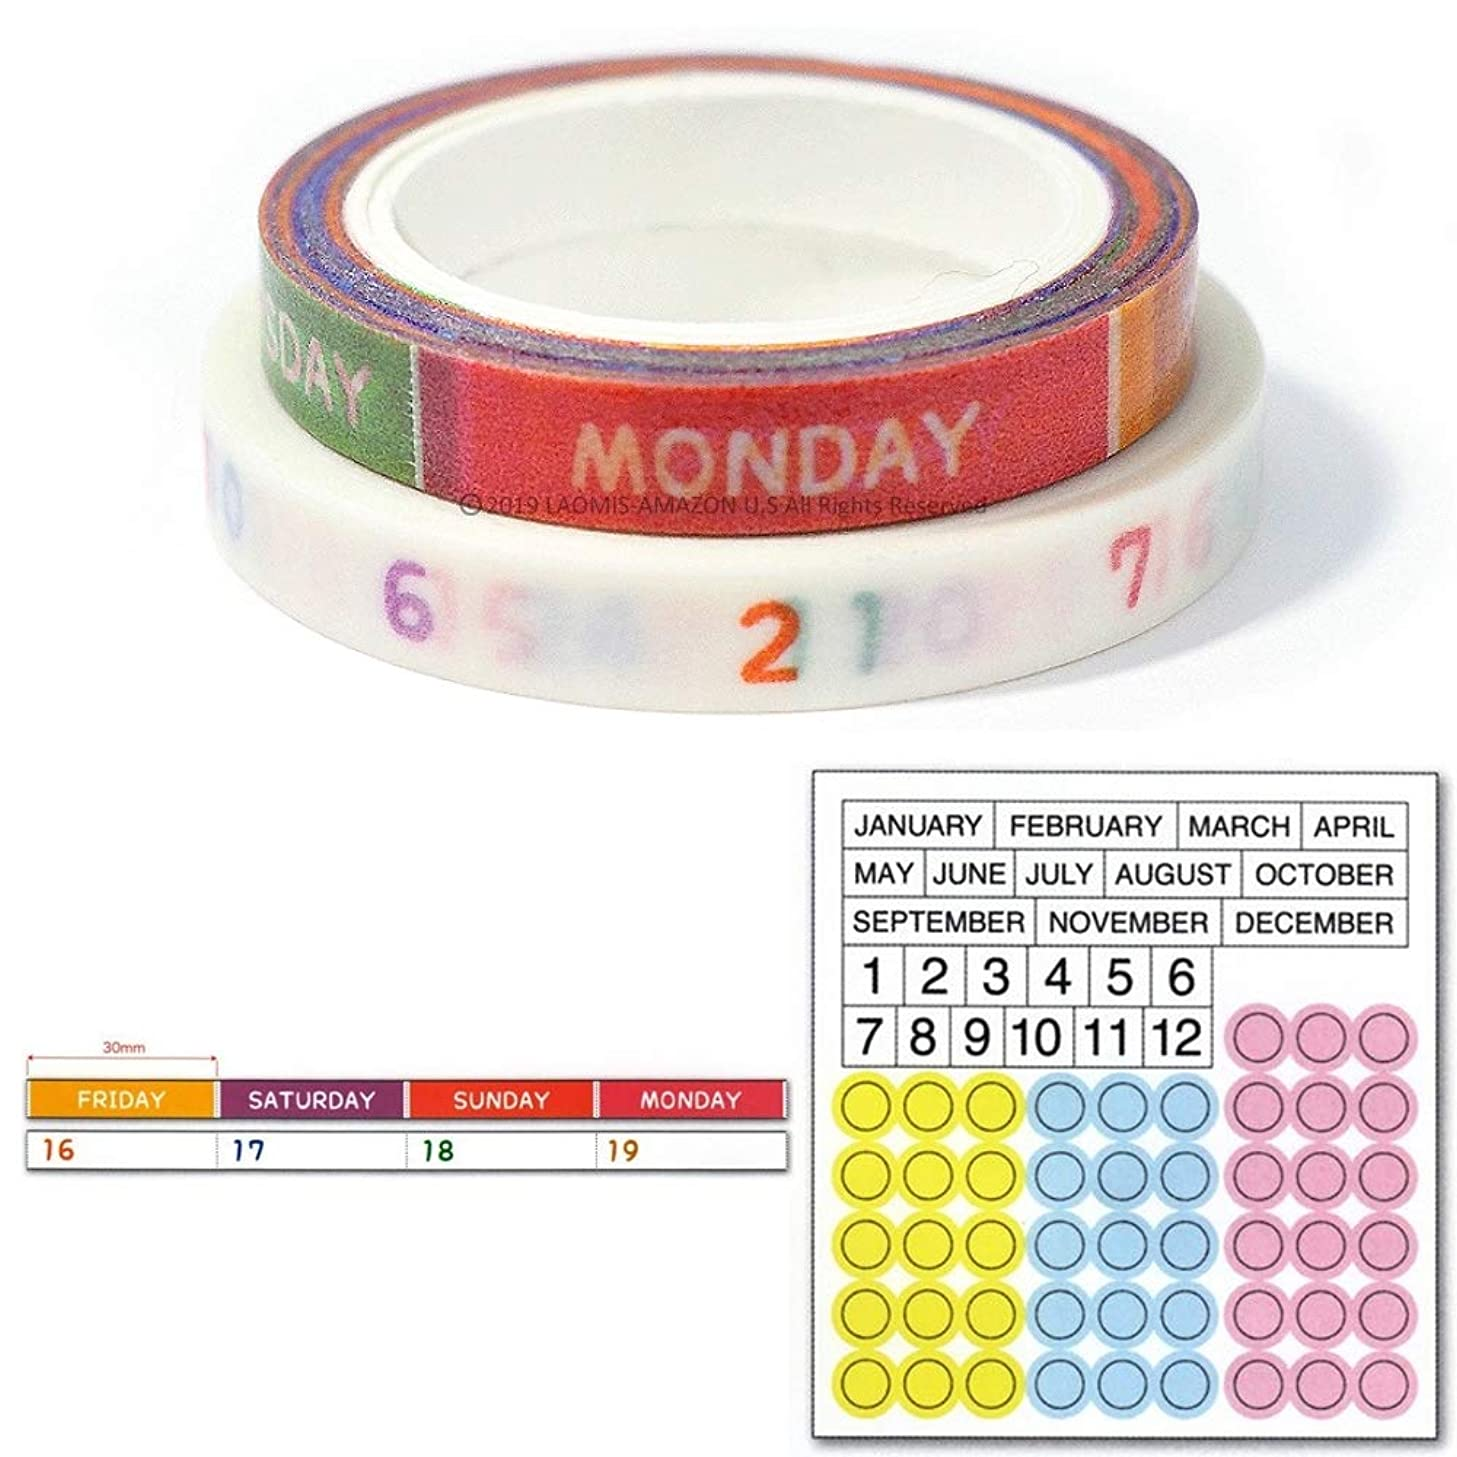 Pine Book Japanese Washi Paper Perforated Tape & Sticker For Planners / Set of 3 (3mm Colorful [ TM00873 ])